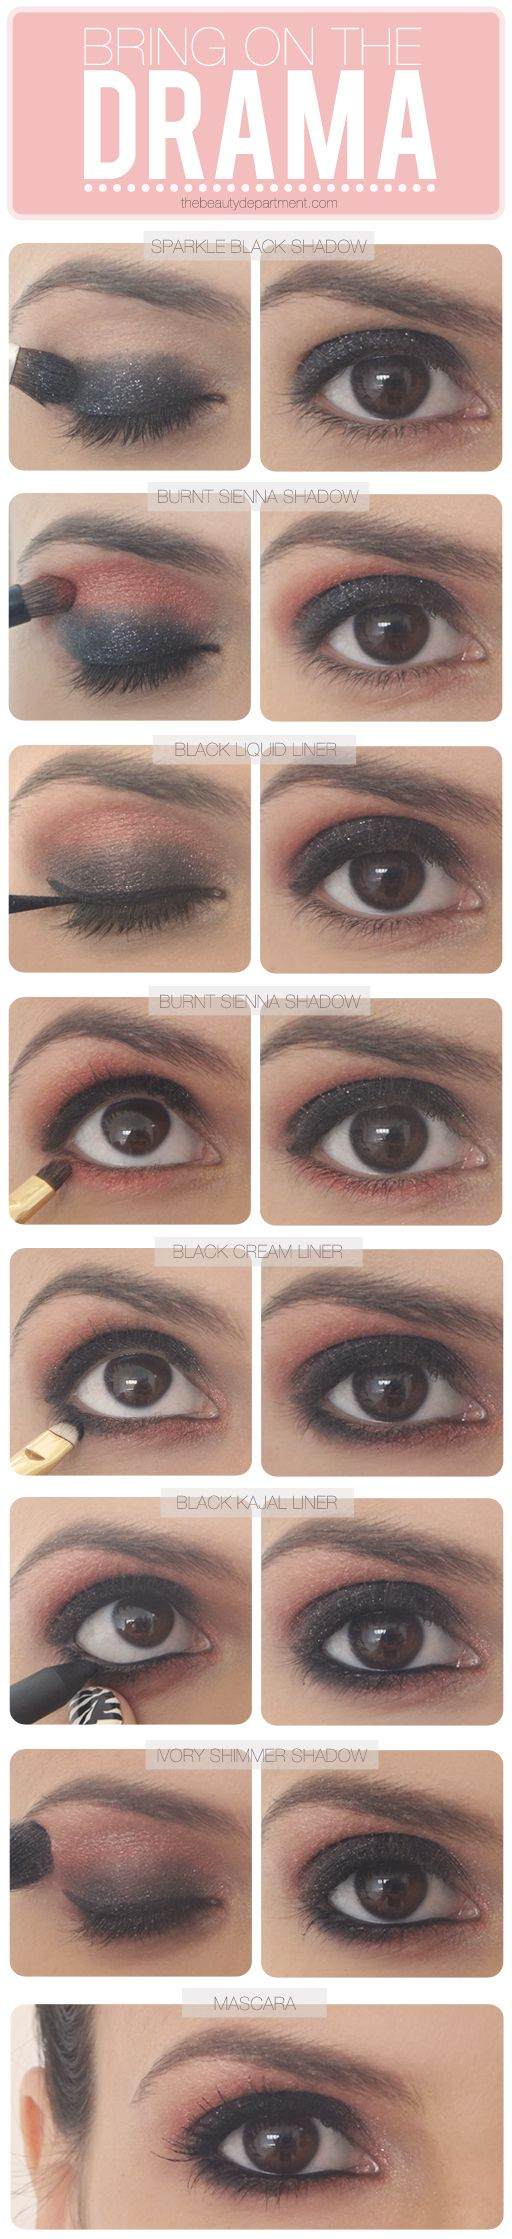 Love this for serious nighttime drama (of the makeup kind!). Click on the photo ...